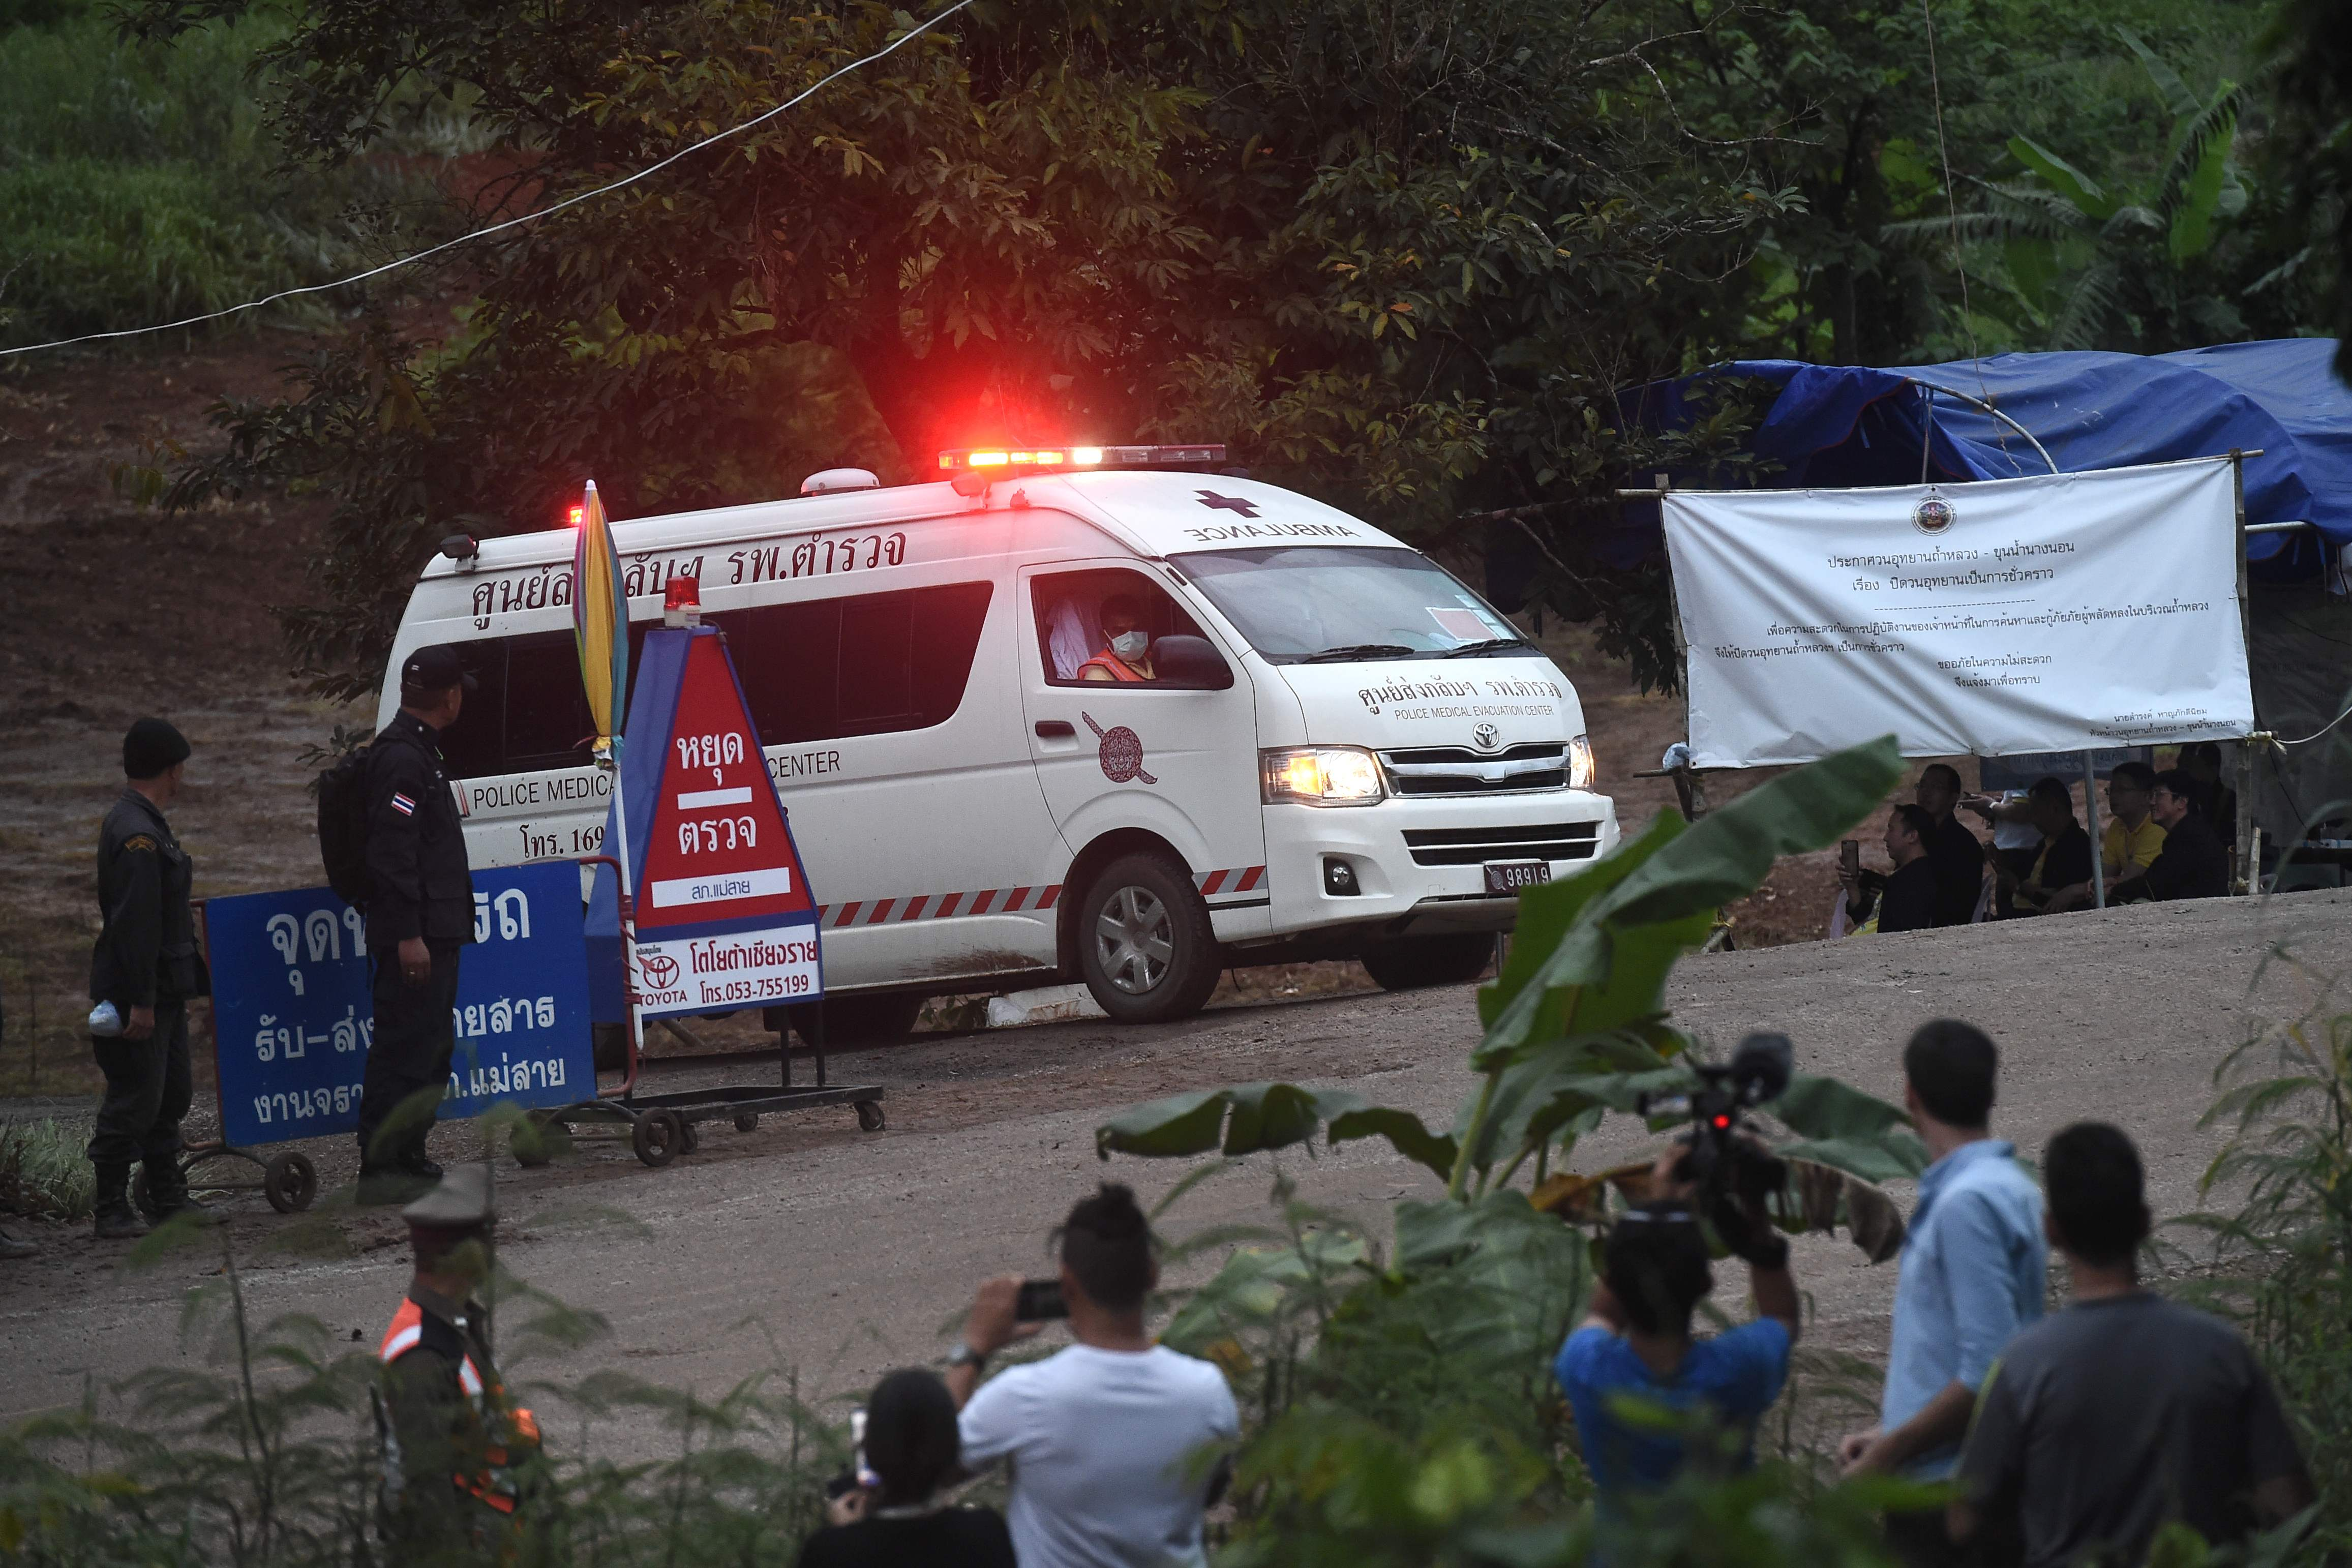 'Faster than expected': 4 boys emerge from Thailand cave in first phase of perilous rescue